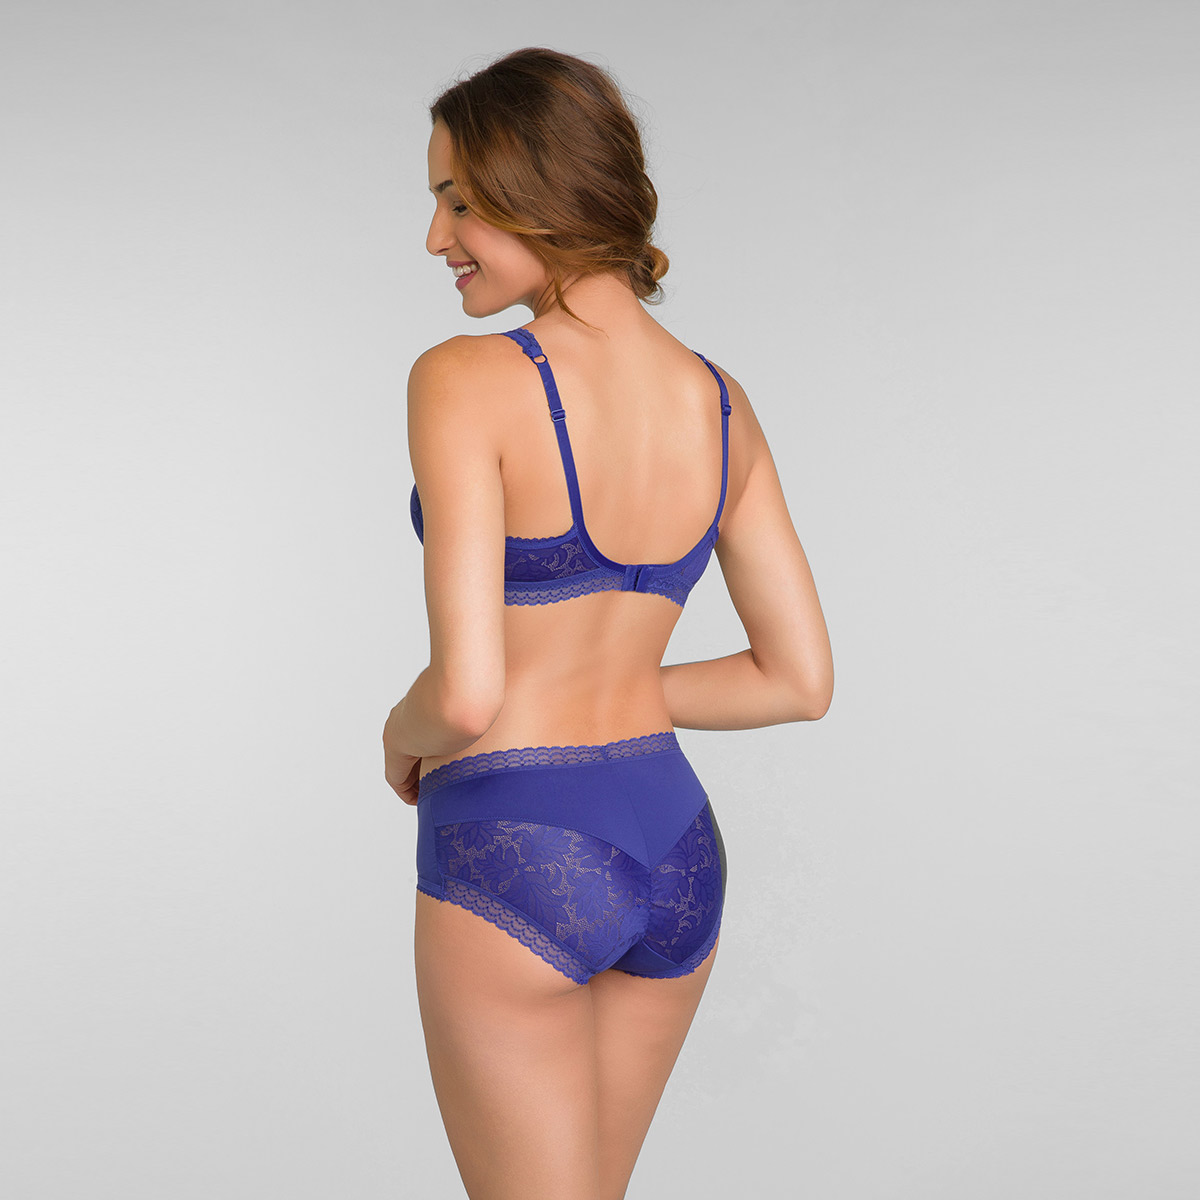 Lace Balcony Bra in Sami Blue Invisible Elegance, , PLAYTEX